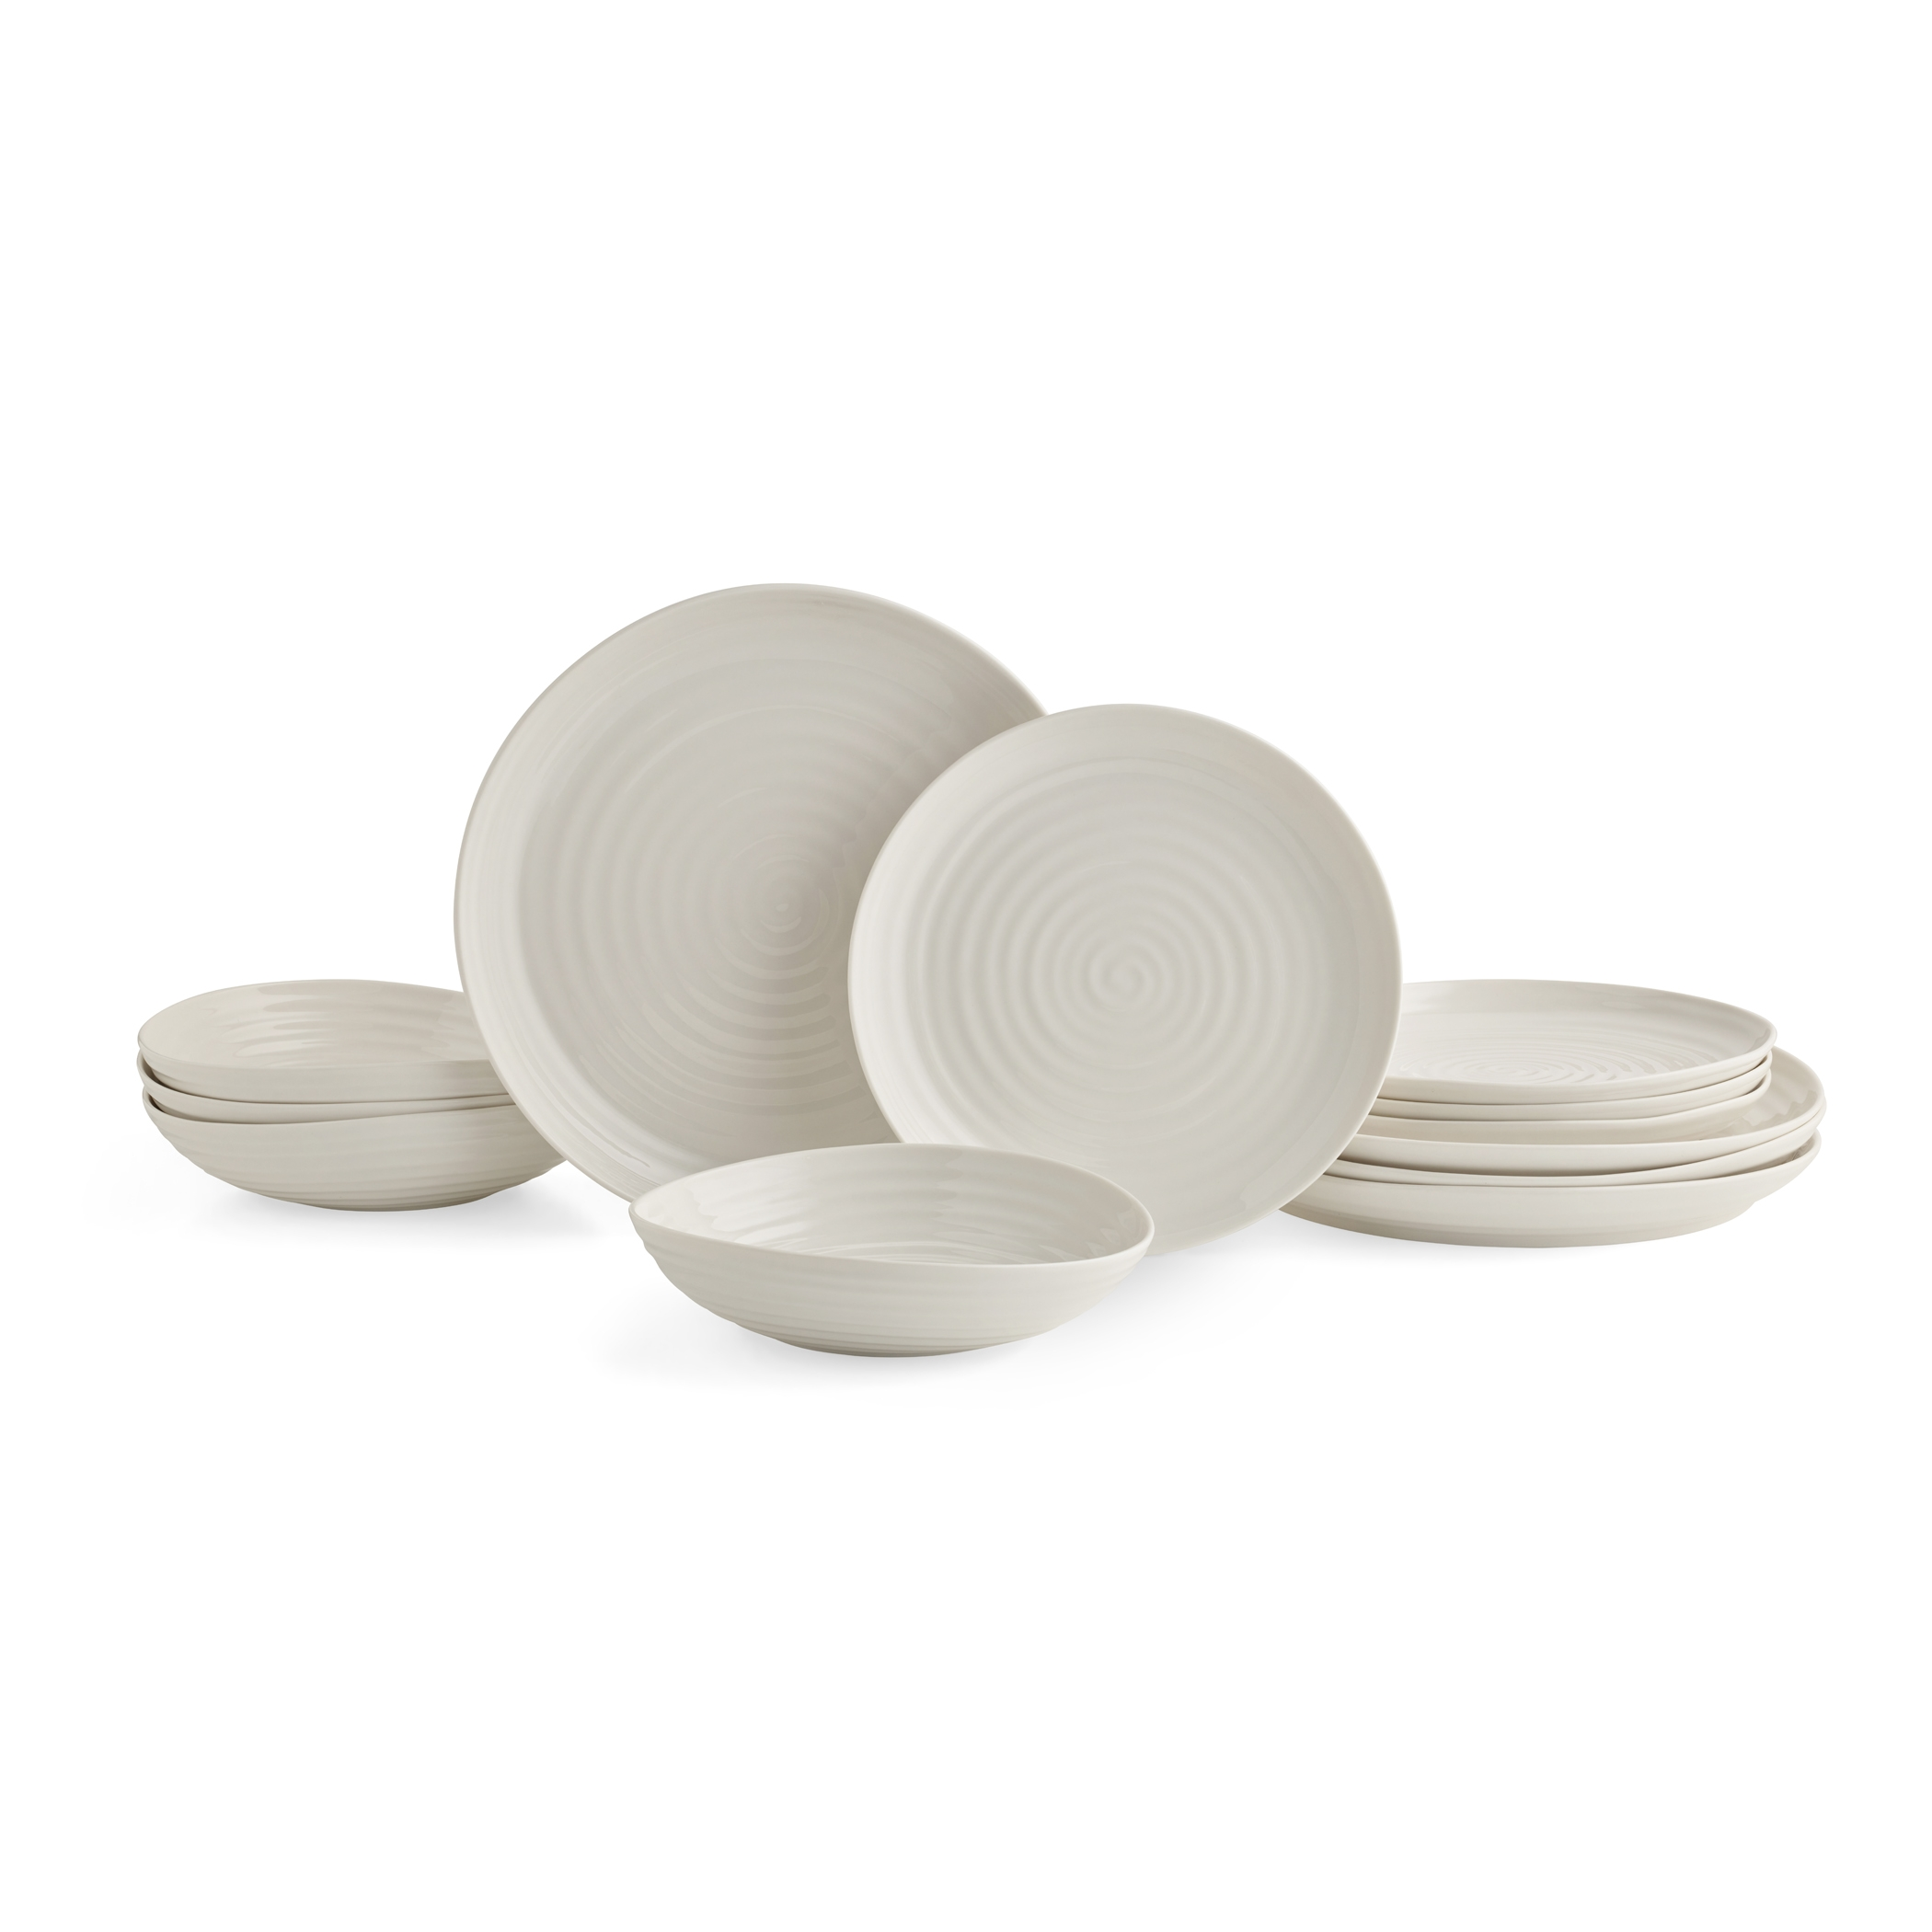 Portmeirion Sophie Conran White 12 Piece Set Coupe Shape image number 0